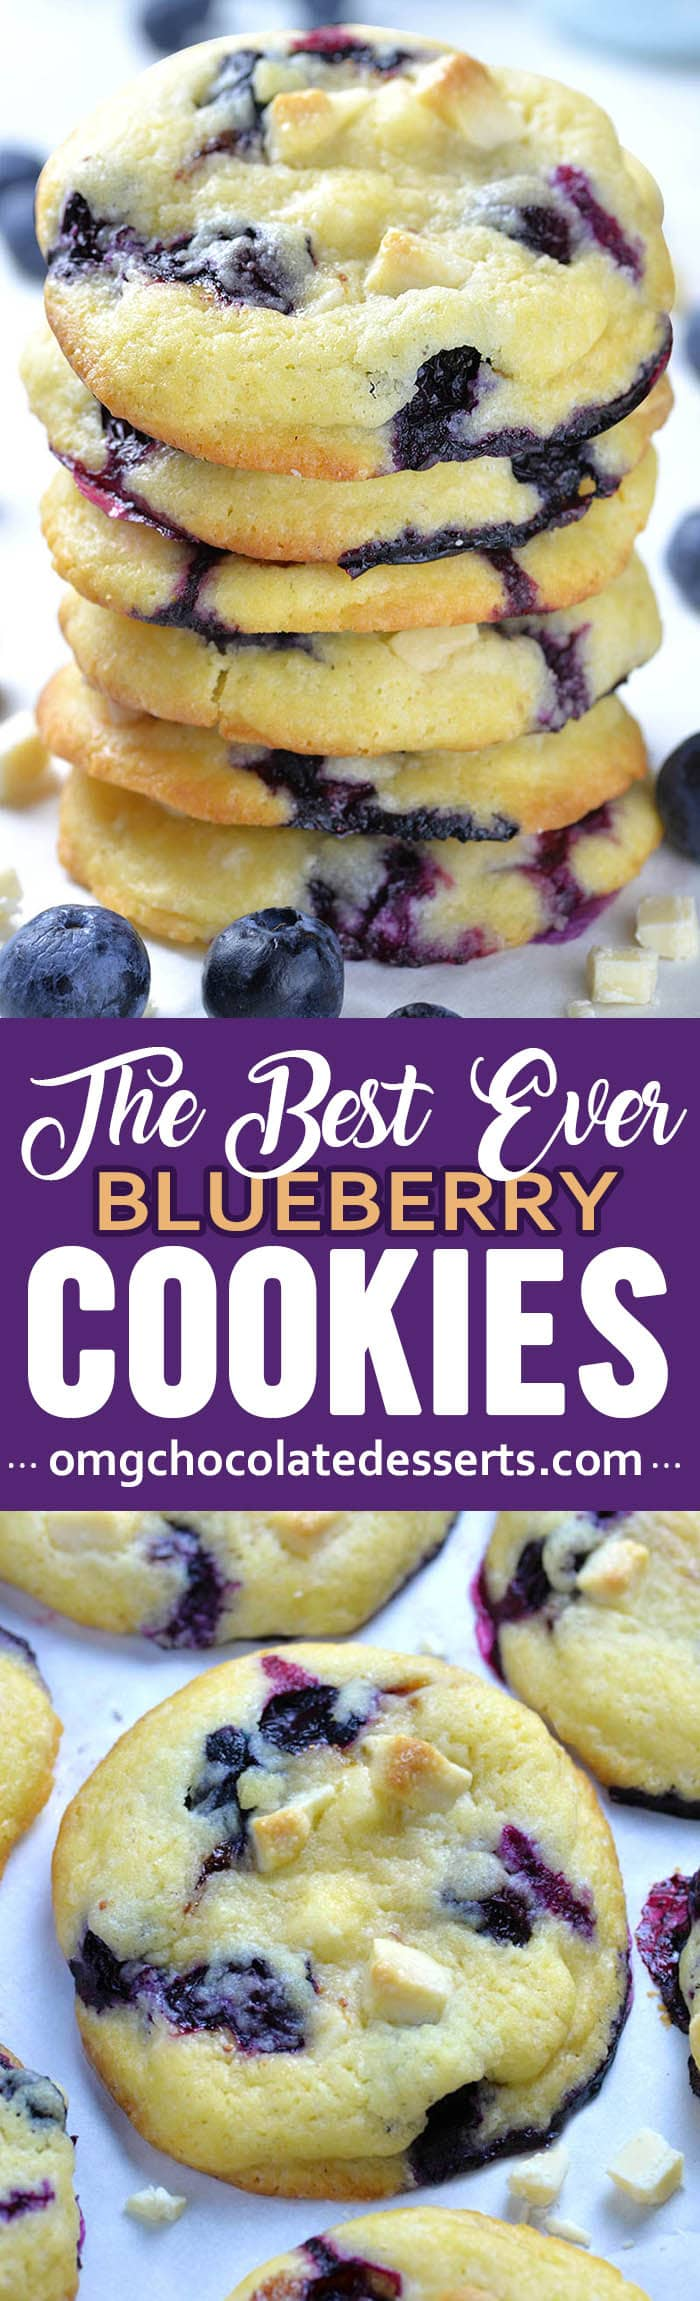 These easy blueberry cookies are also the best: light as air with crispy exteriors and soft, cream cheese and fruit-filled middles. Fruity, soft, and chewy cookie studded with creamy white chocolate chips.